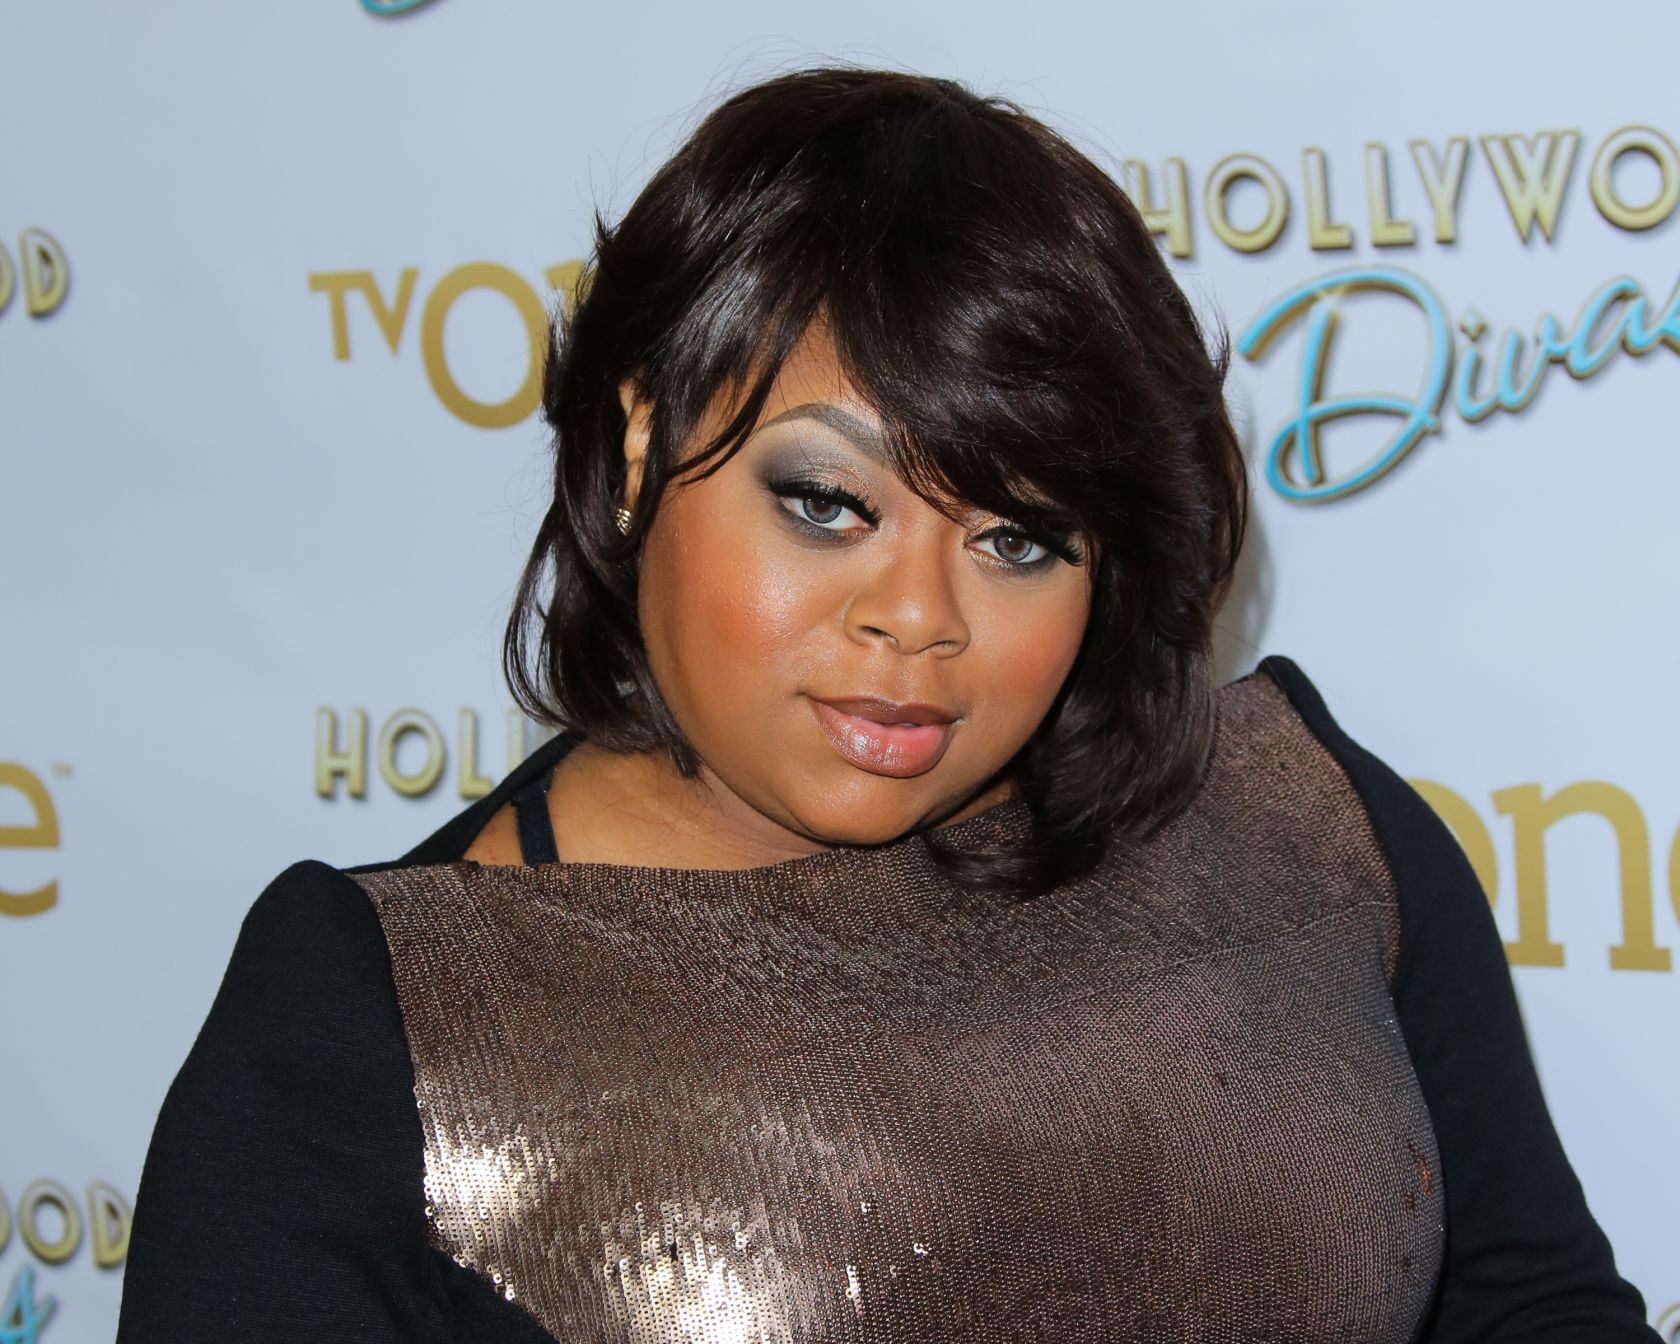 Premiere Party For TV One's 'Hollywood Divas'